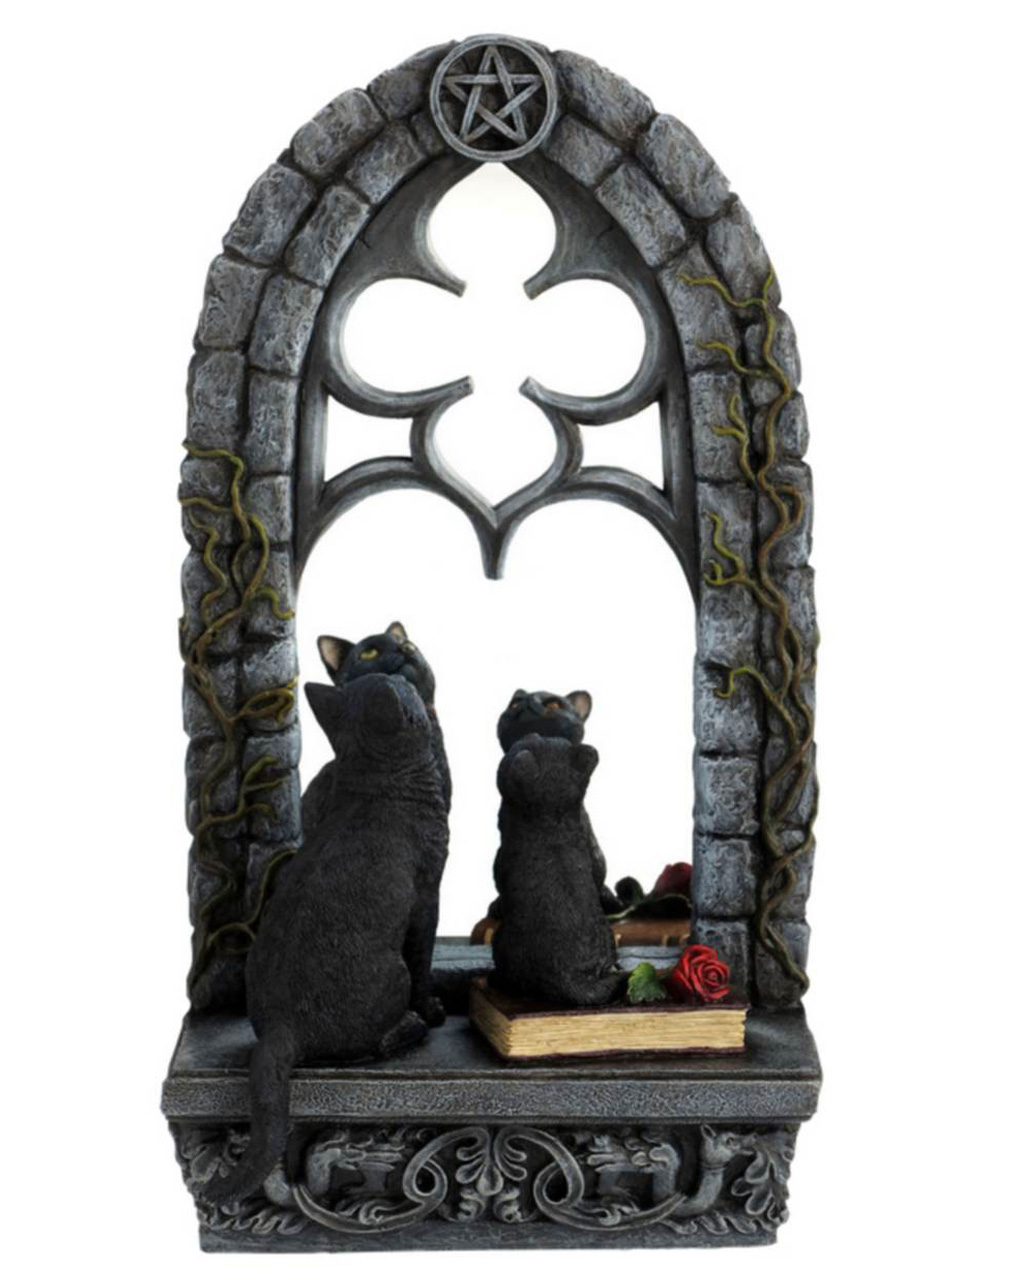 gothic deko spiegel mit katzen jetzt bestellen karneval. Black Bedroom Furniture Sets. Home Design Ideas